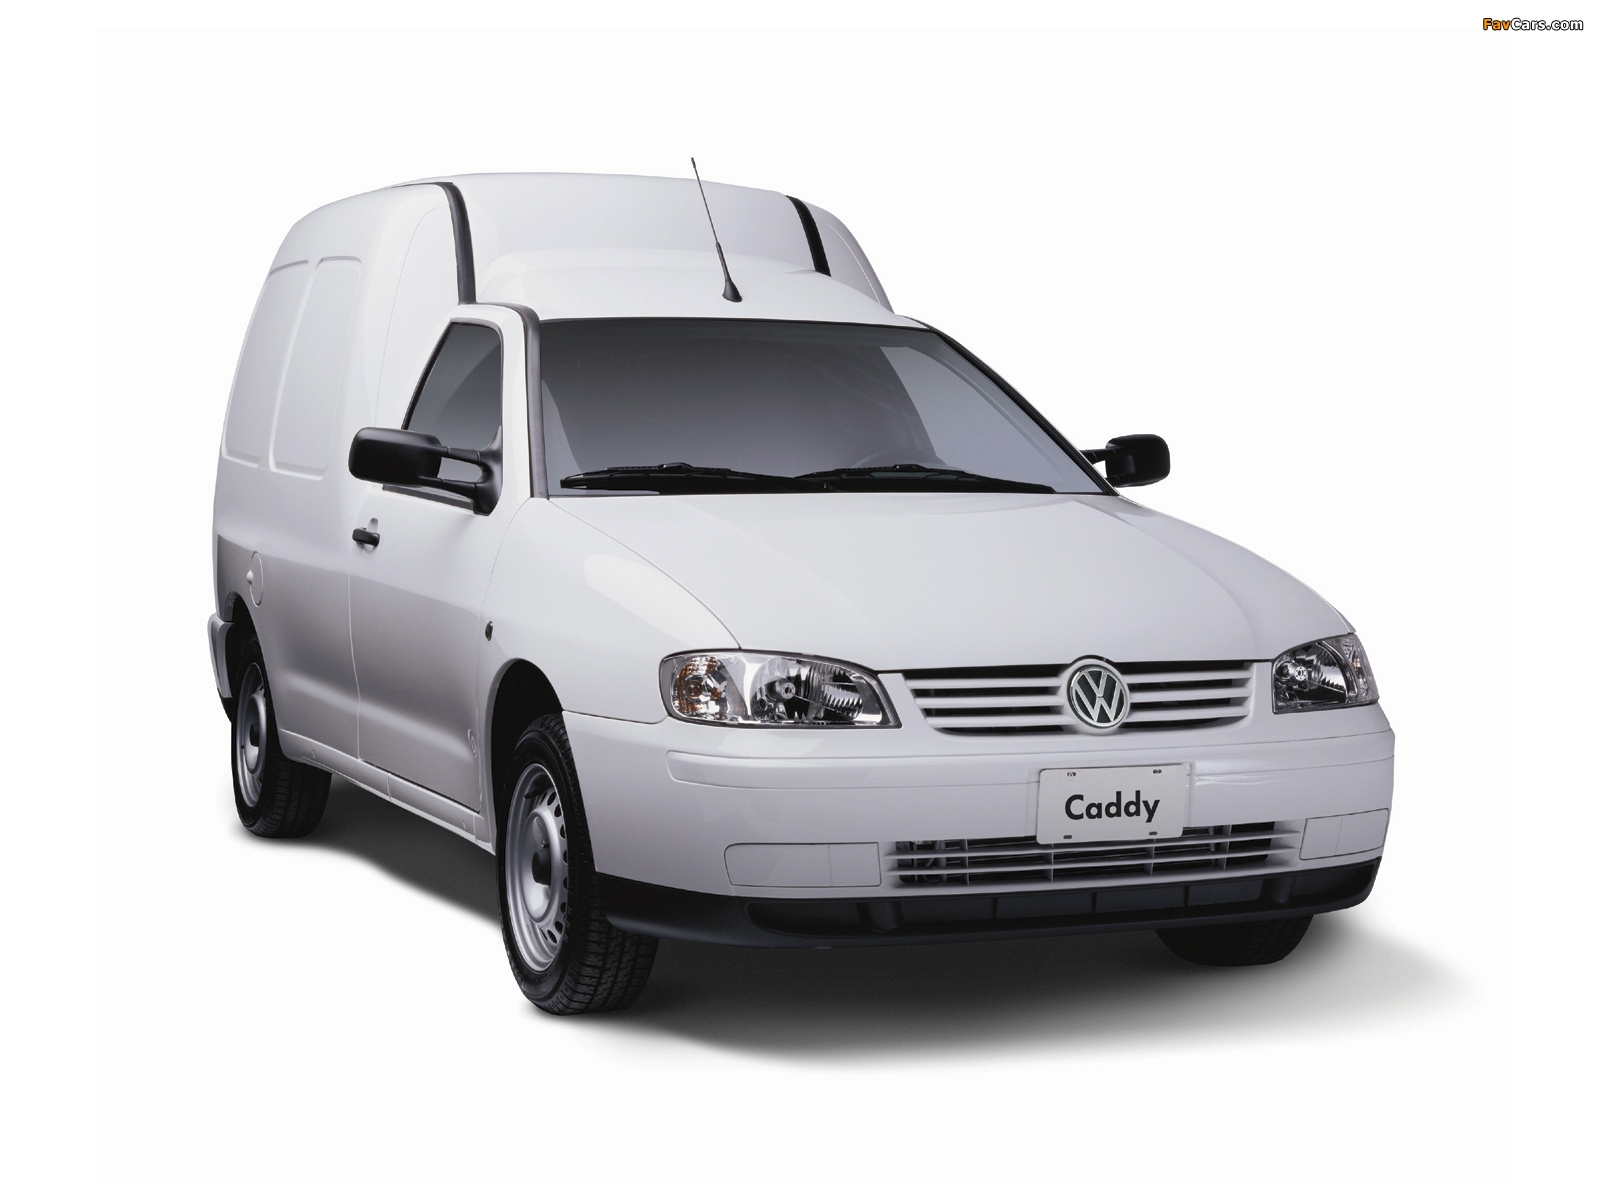 2005 Volkswagen Caddy #9